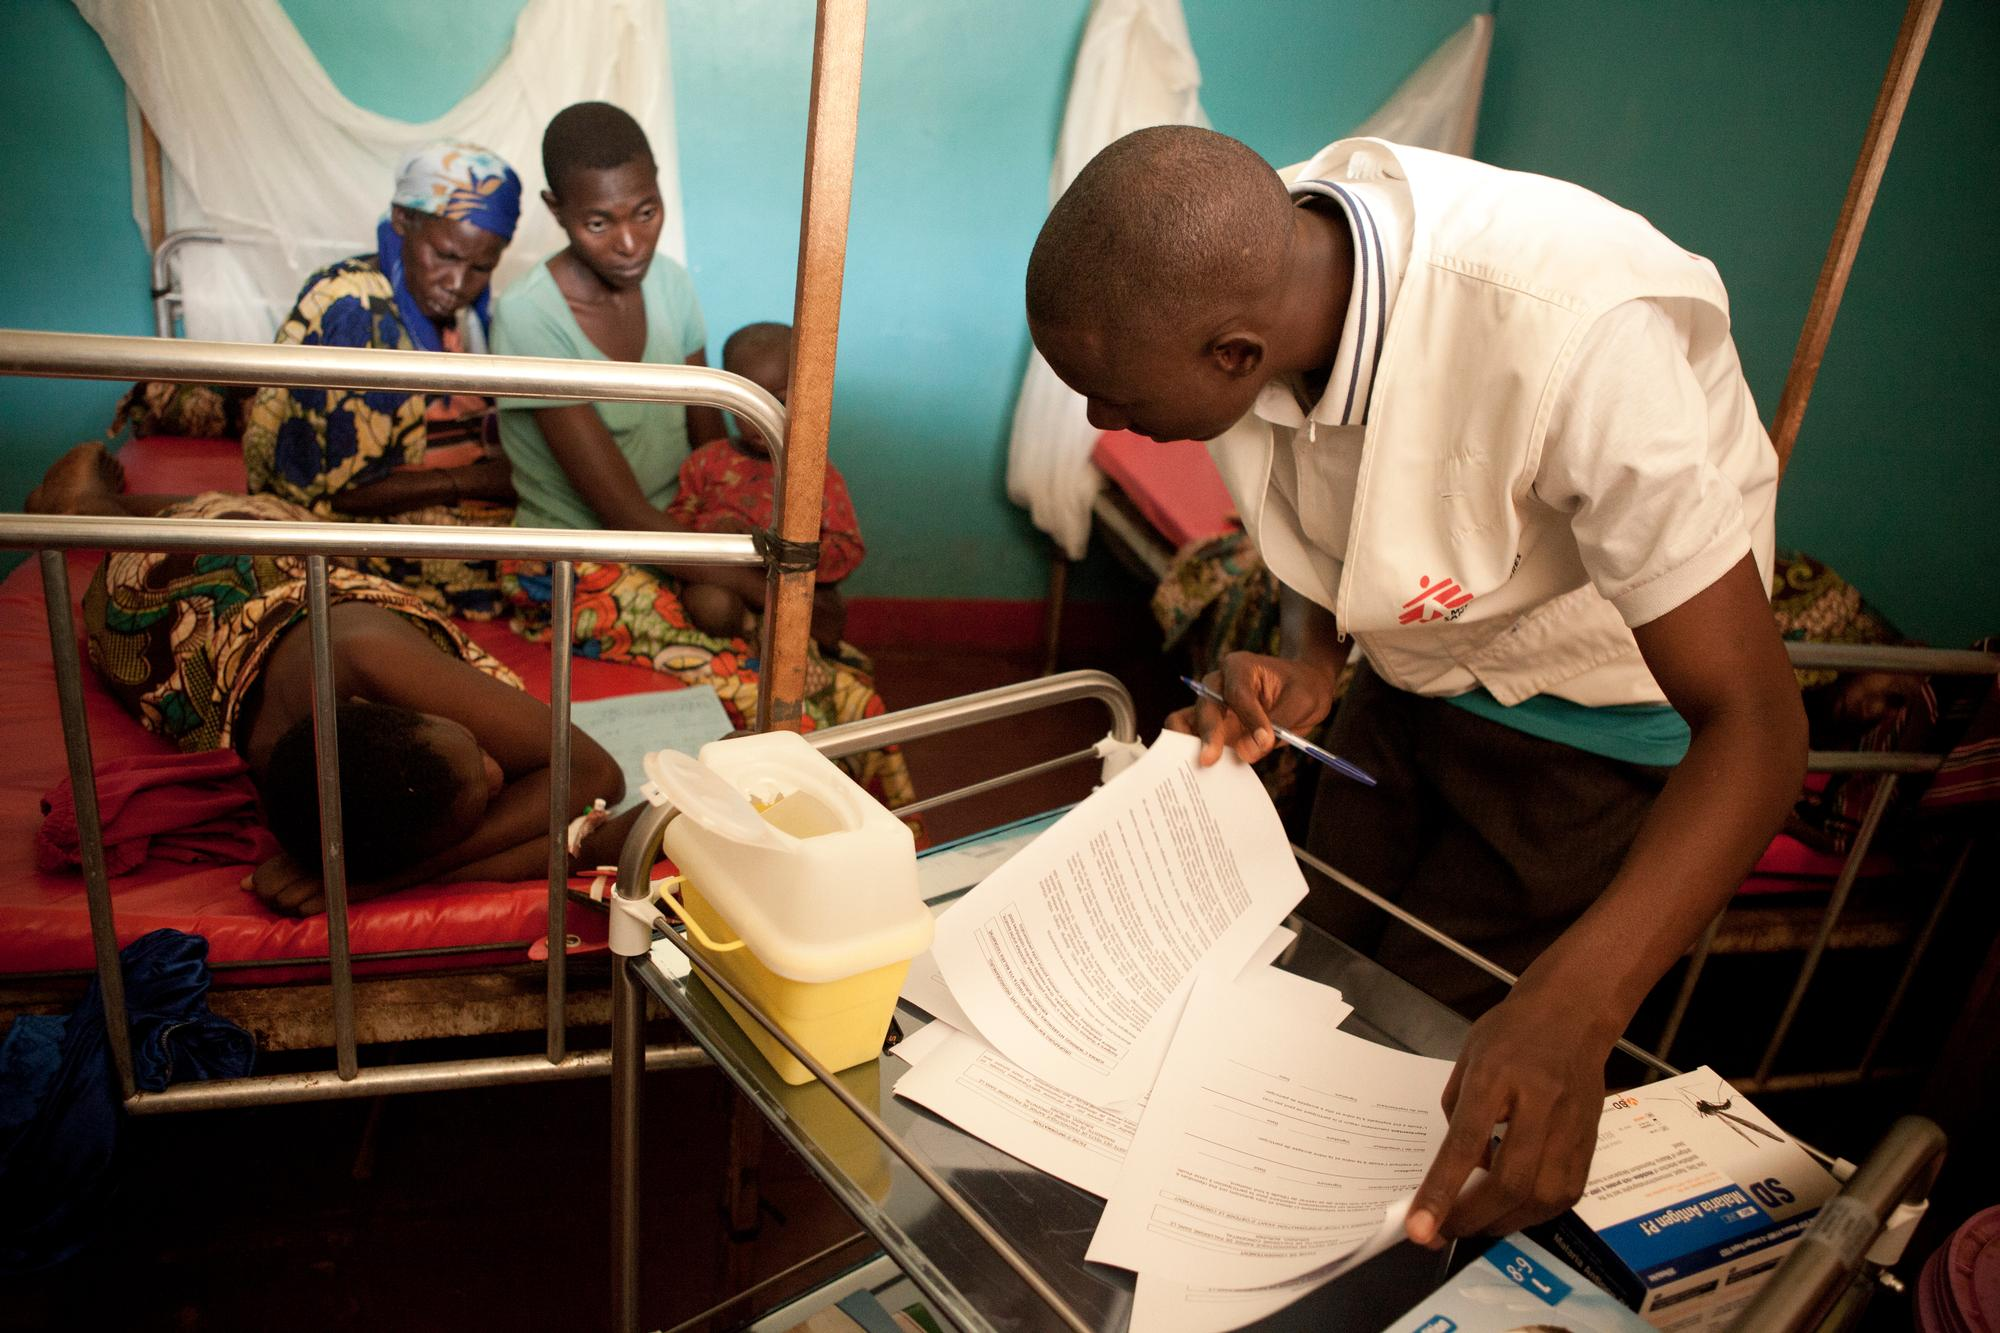 An MSF health worker, flipping through papers, leans down to a patient lying on a bed, as two women and a child sitting on the bed look on.